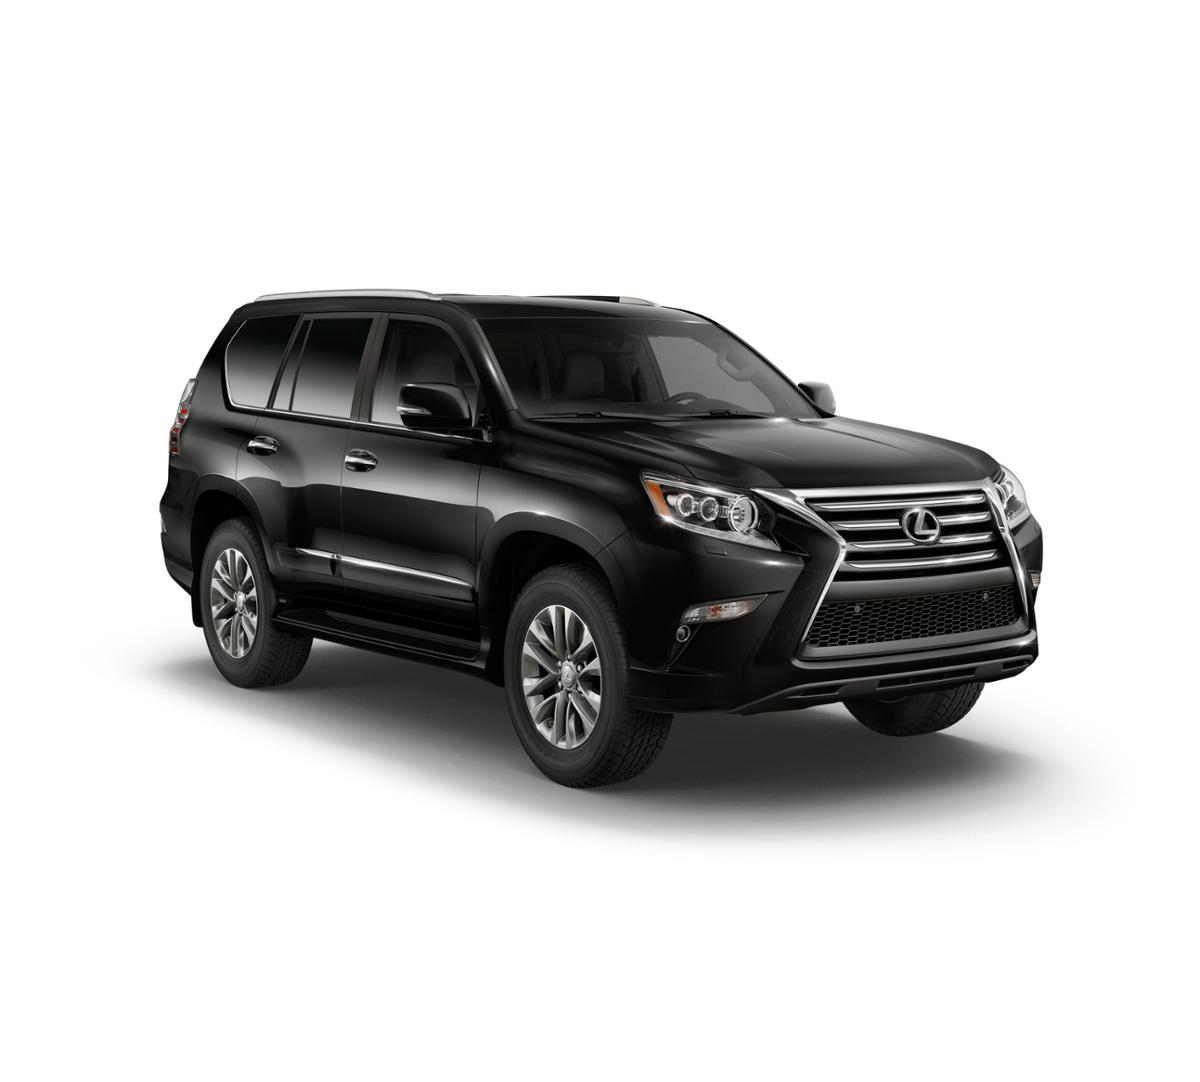 2017 Lexus GX 460 Vehicle Photo in Modesto, CA 95356